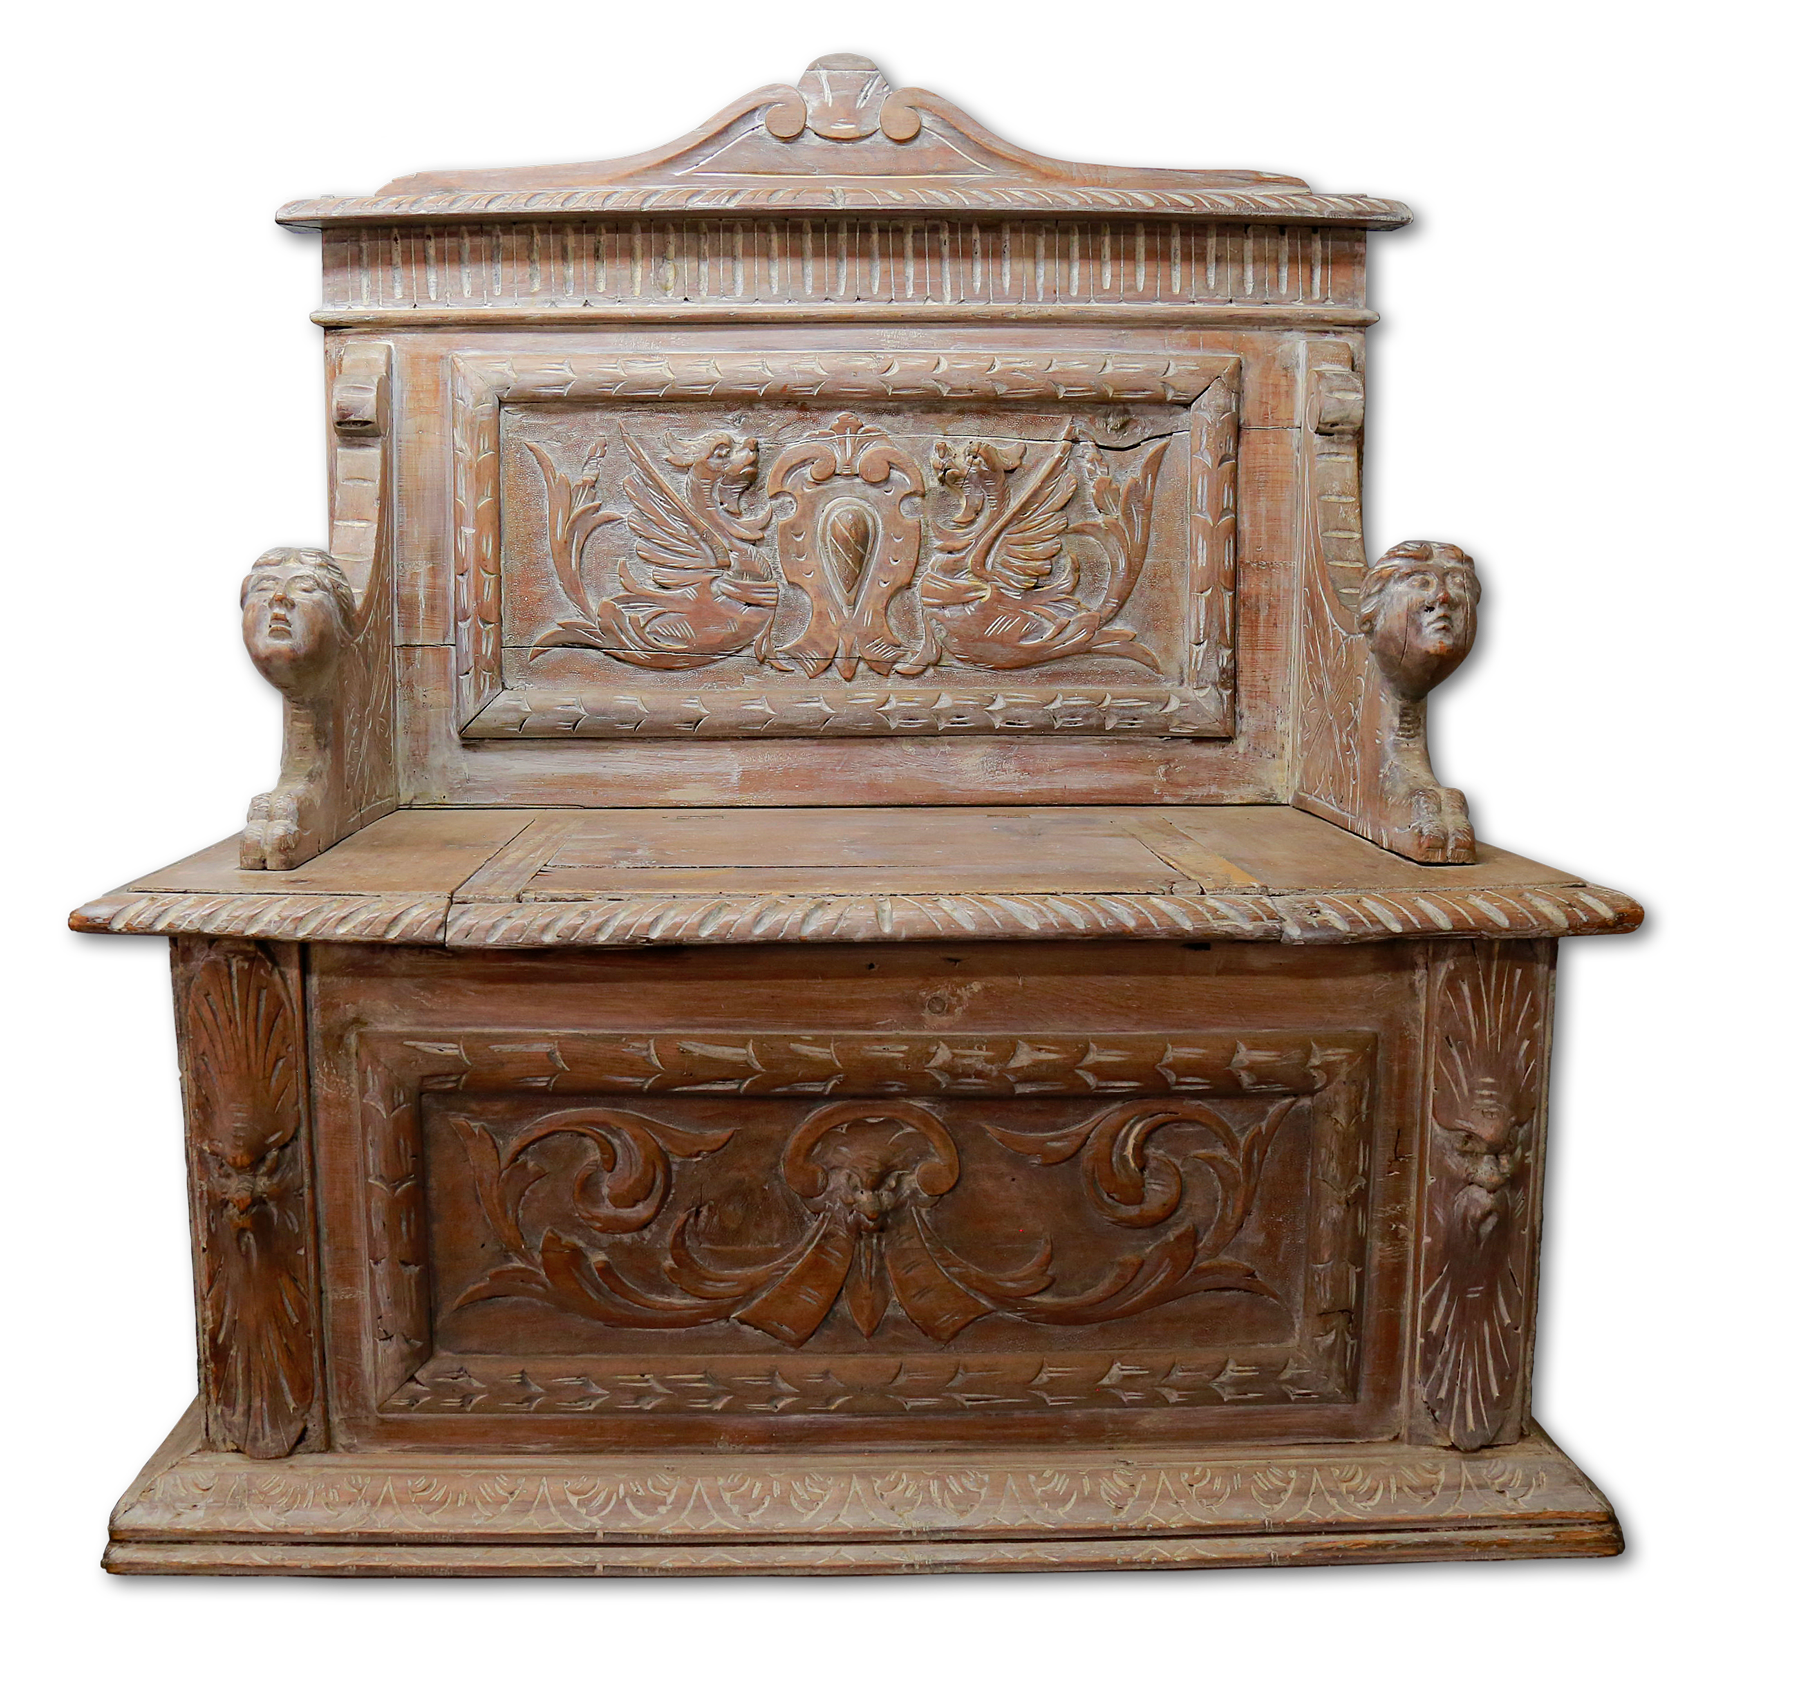 Detailed carving on sideboard